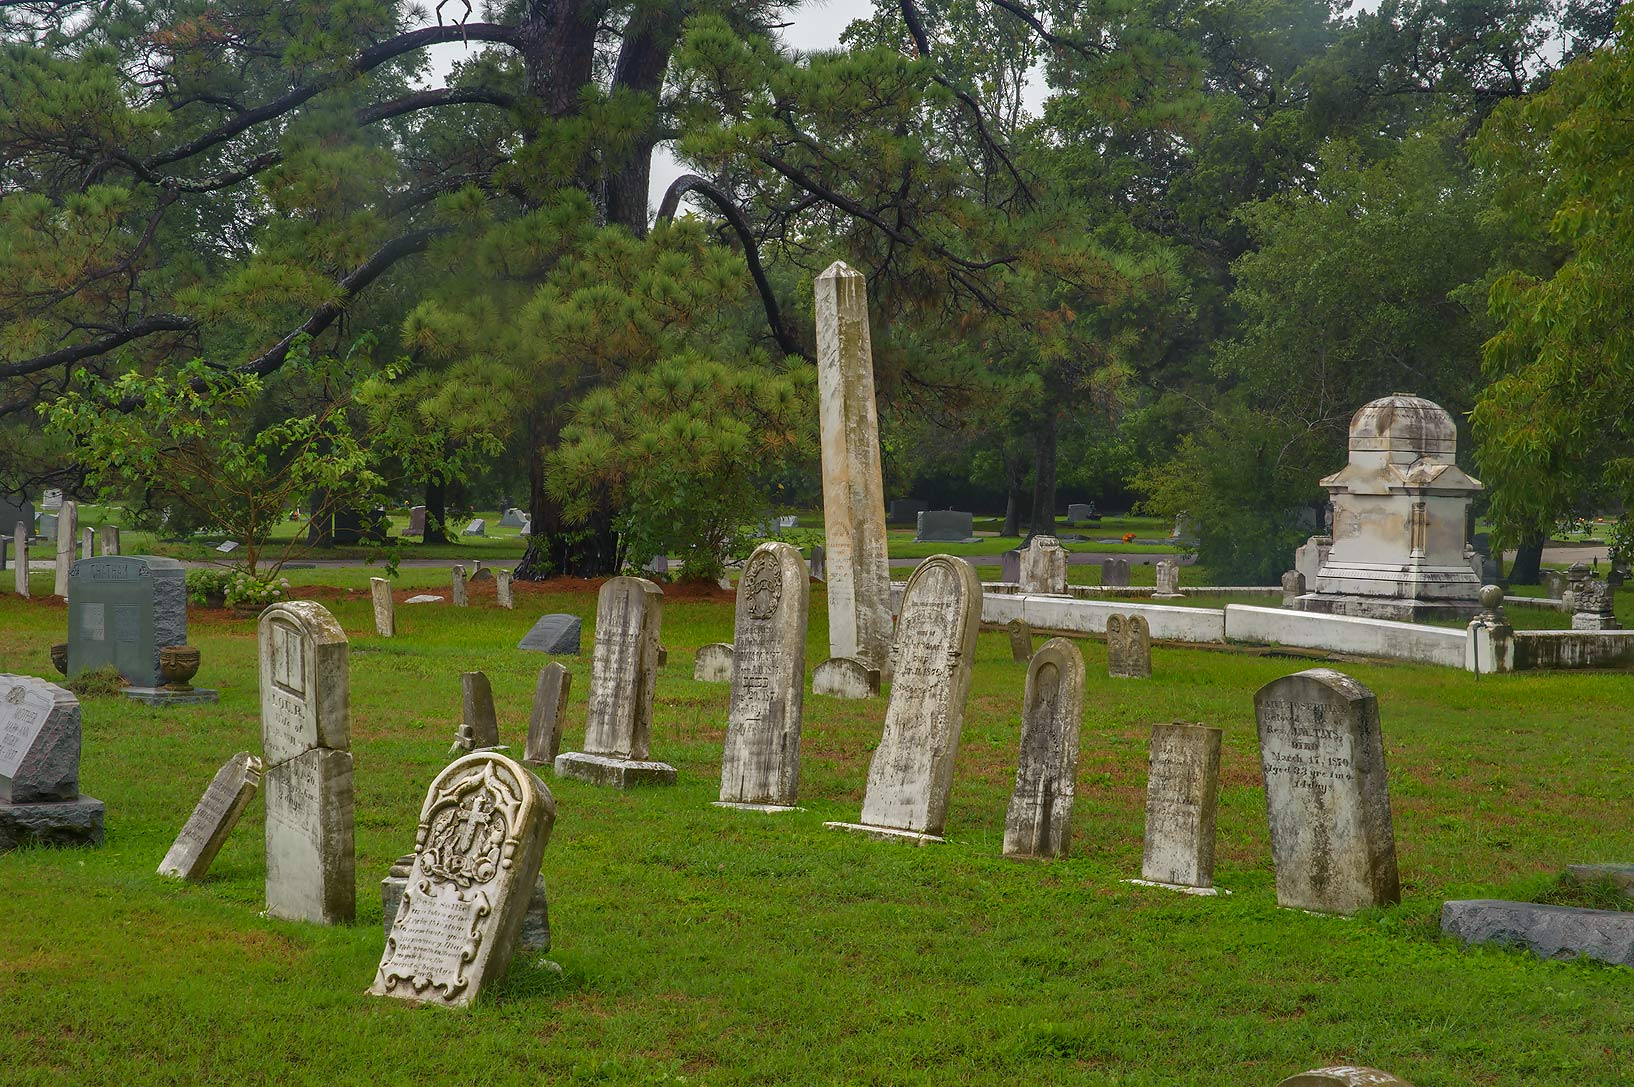 Old tombs in City Cemetery at rain. Bryan, Texas